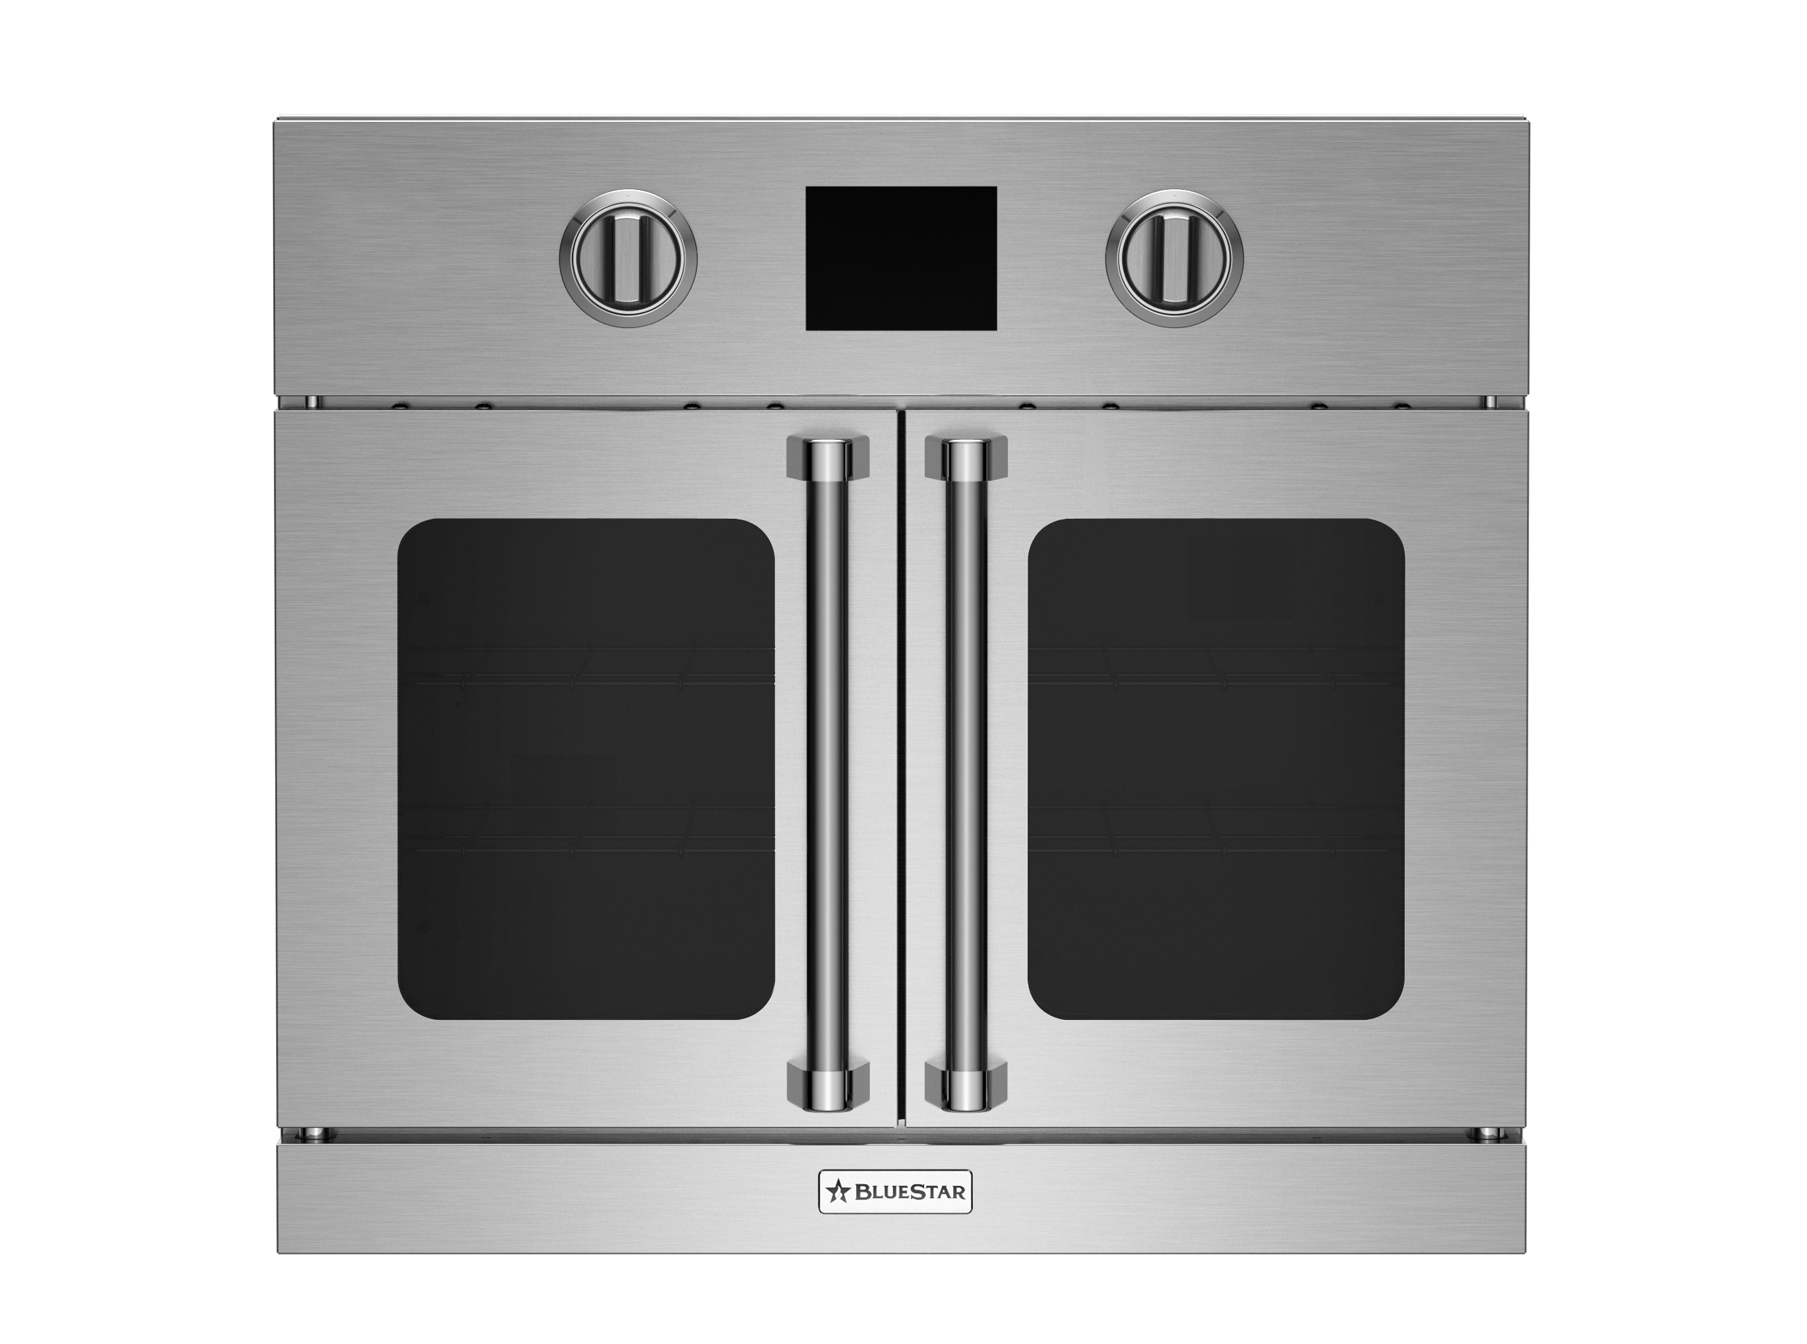 BlueStar 30? ELECTRIC WALL OVEN WITH FRENCH DOORS